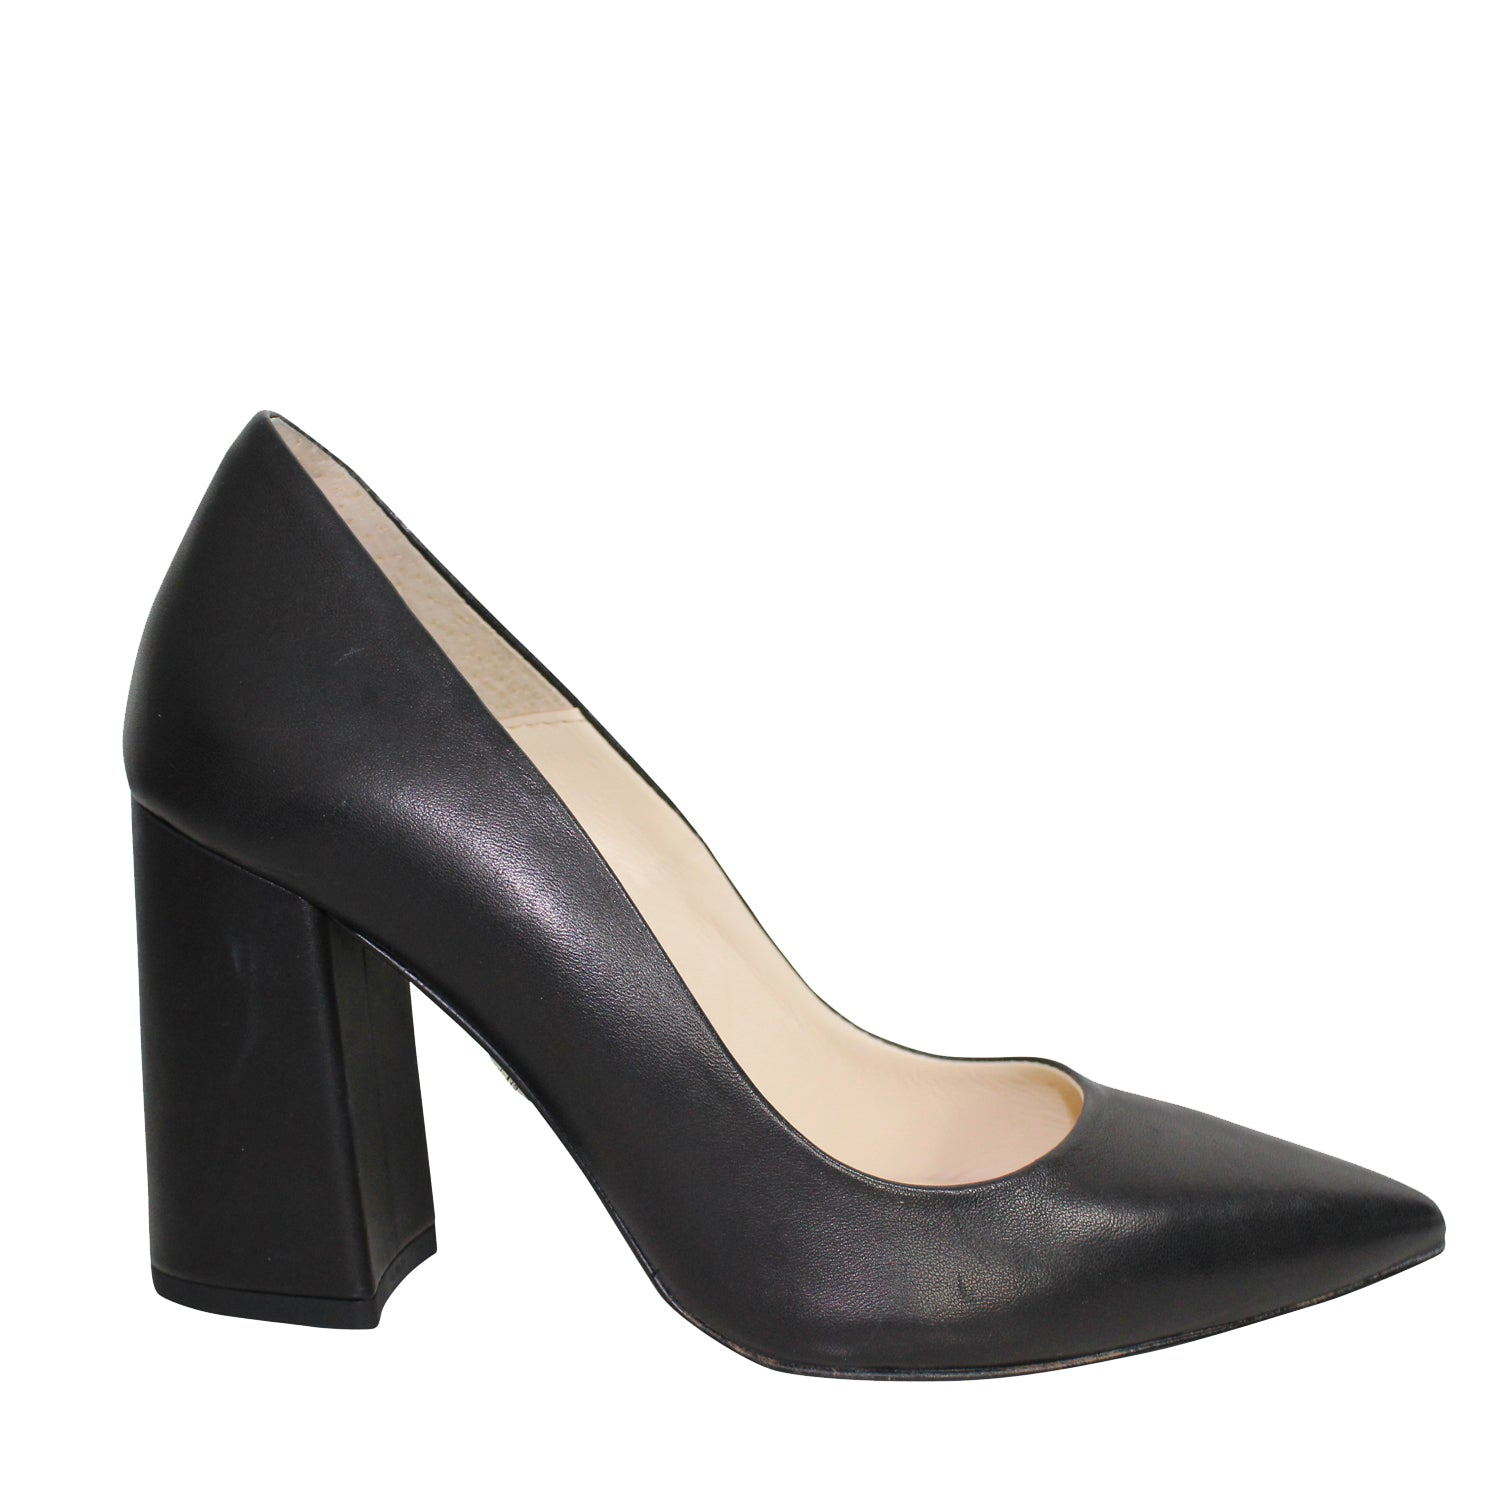 Rudsak Bara Heel 37/7 Black Muse Boutique Outlet